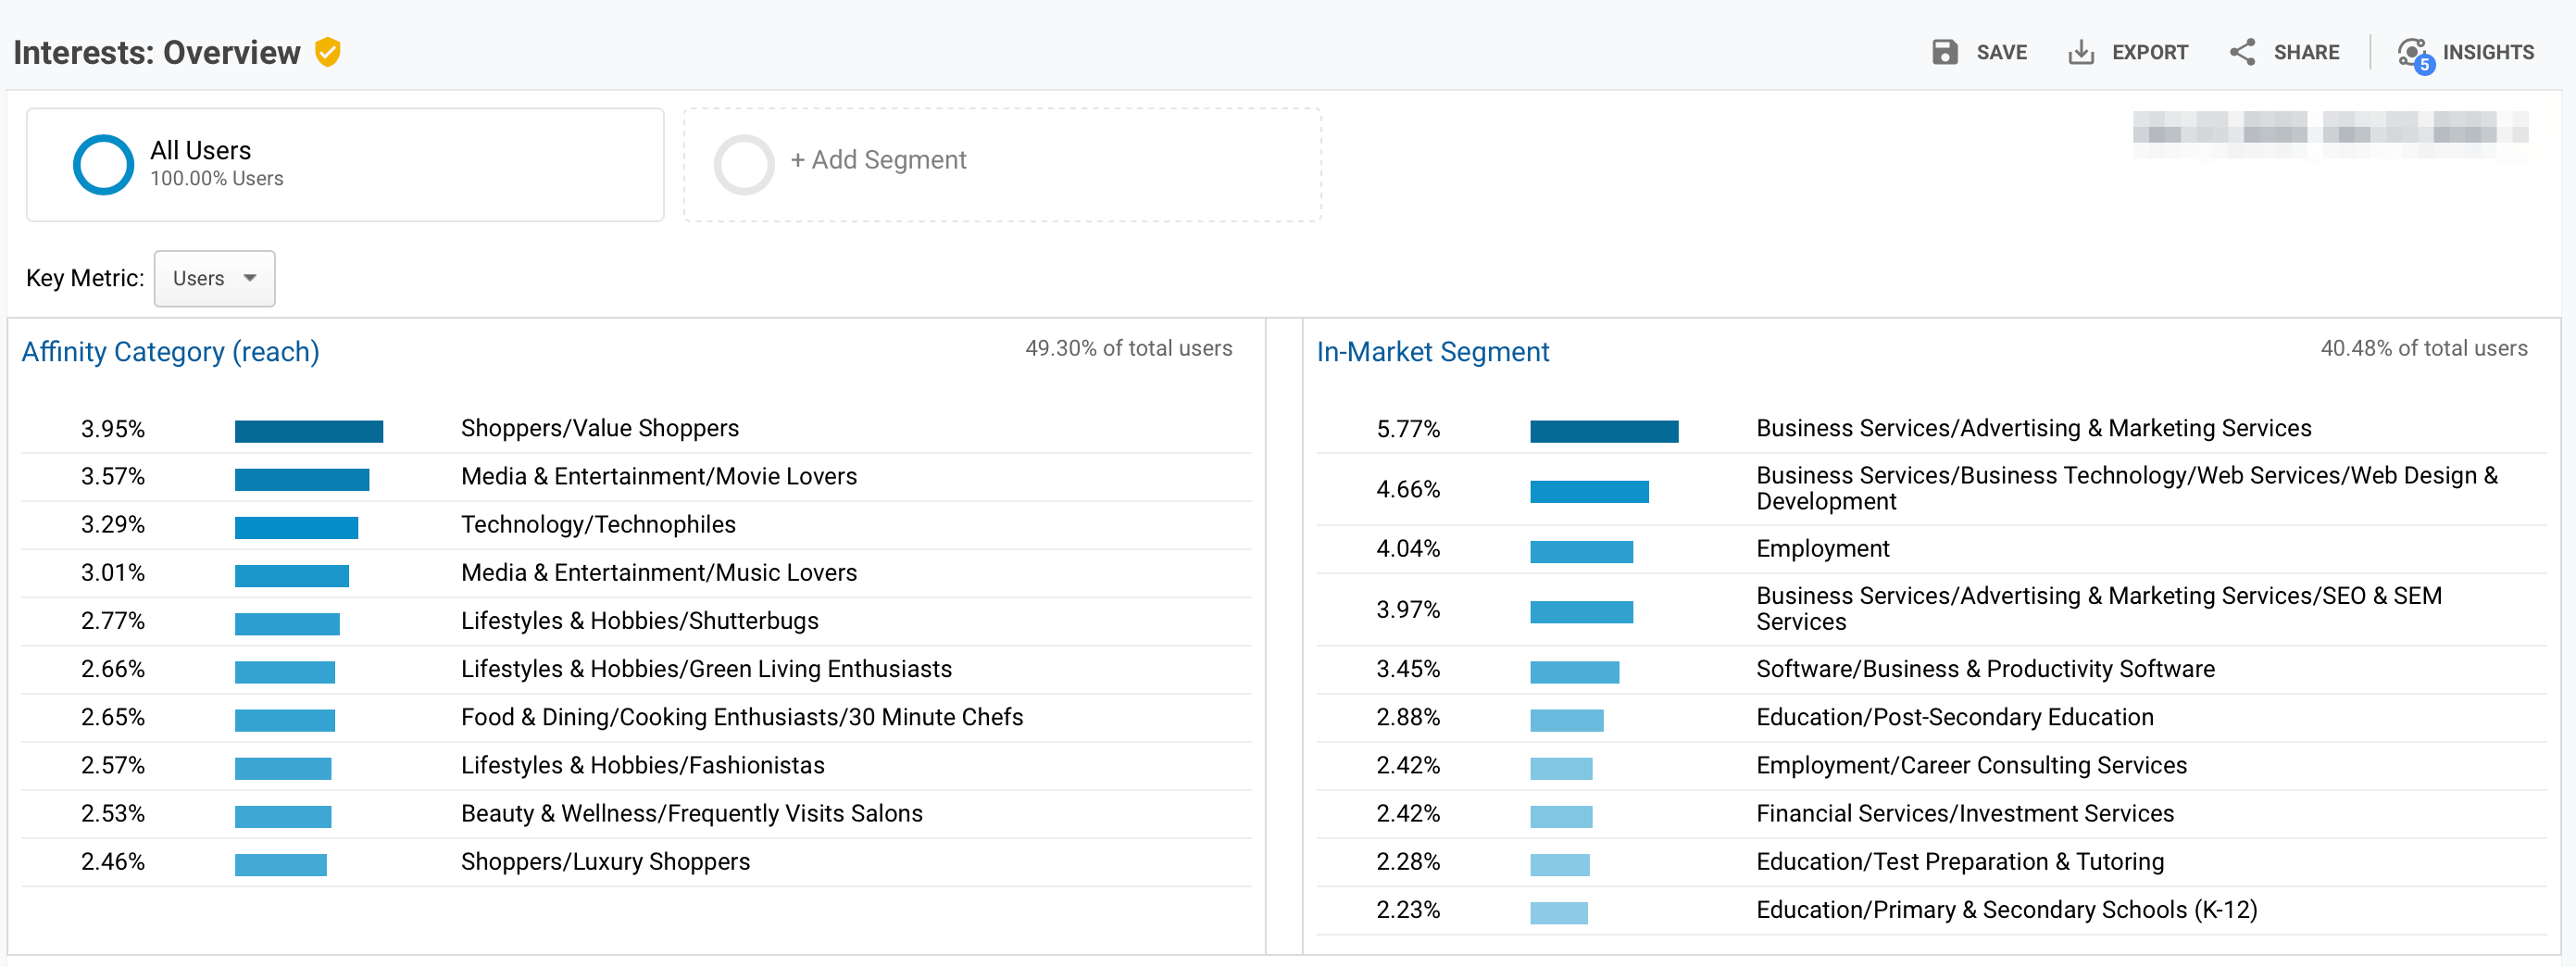 Interests Overview Report - Google Analytics